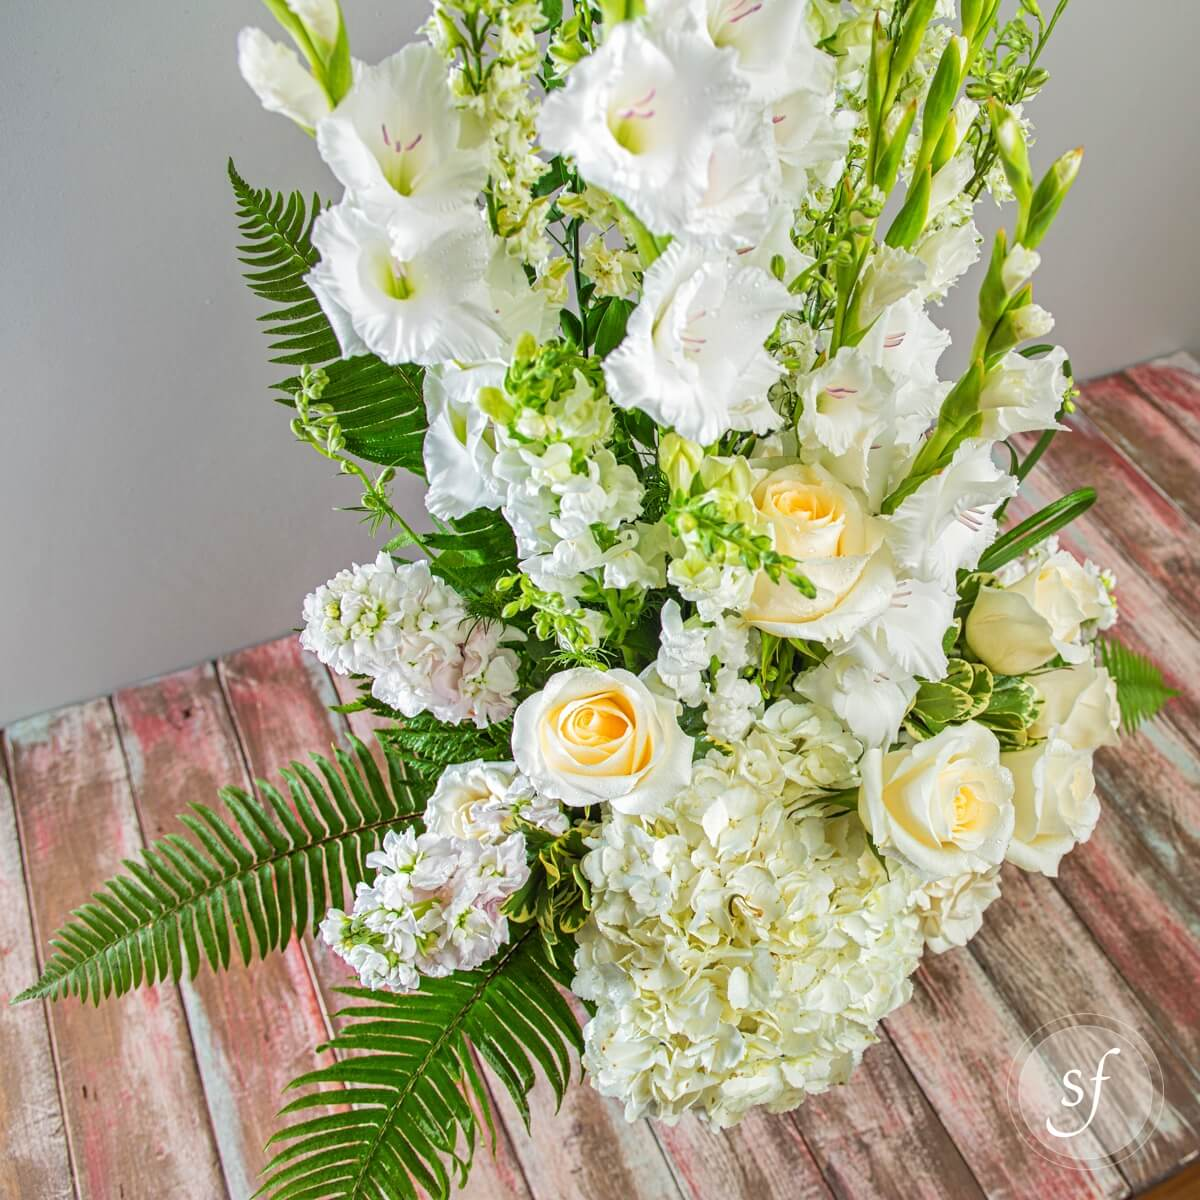 Peaceful urn in white sympathy steves floral express sympathy with this large and elegant funeral arrangement featuring white gladioli roses hydrangea izmirmasajfo Image collections